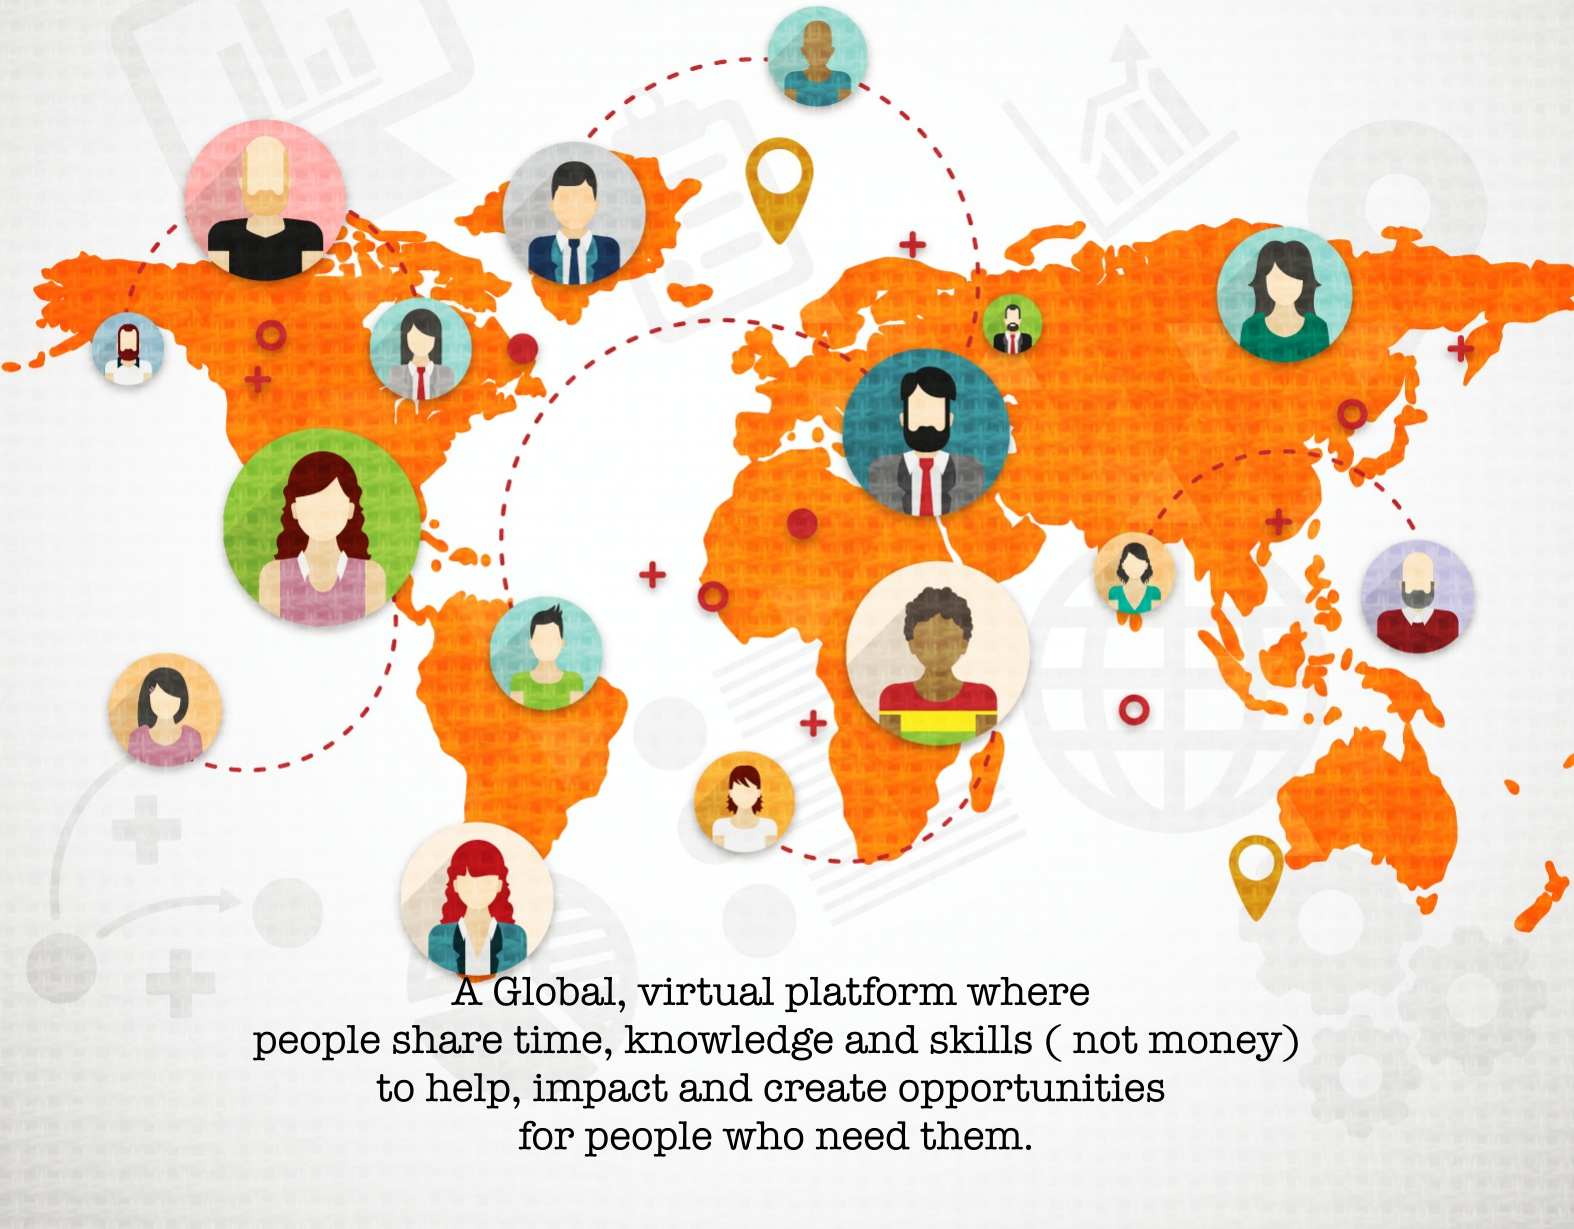 60 Minute 2Impact - Picture shows a global map of professionals connecting and sharing knowledge with those who need opportunities